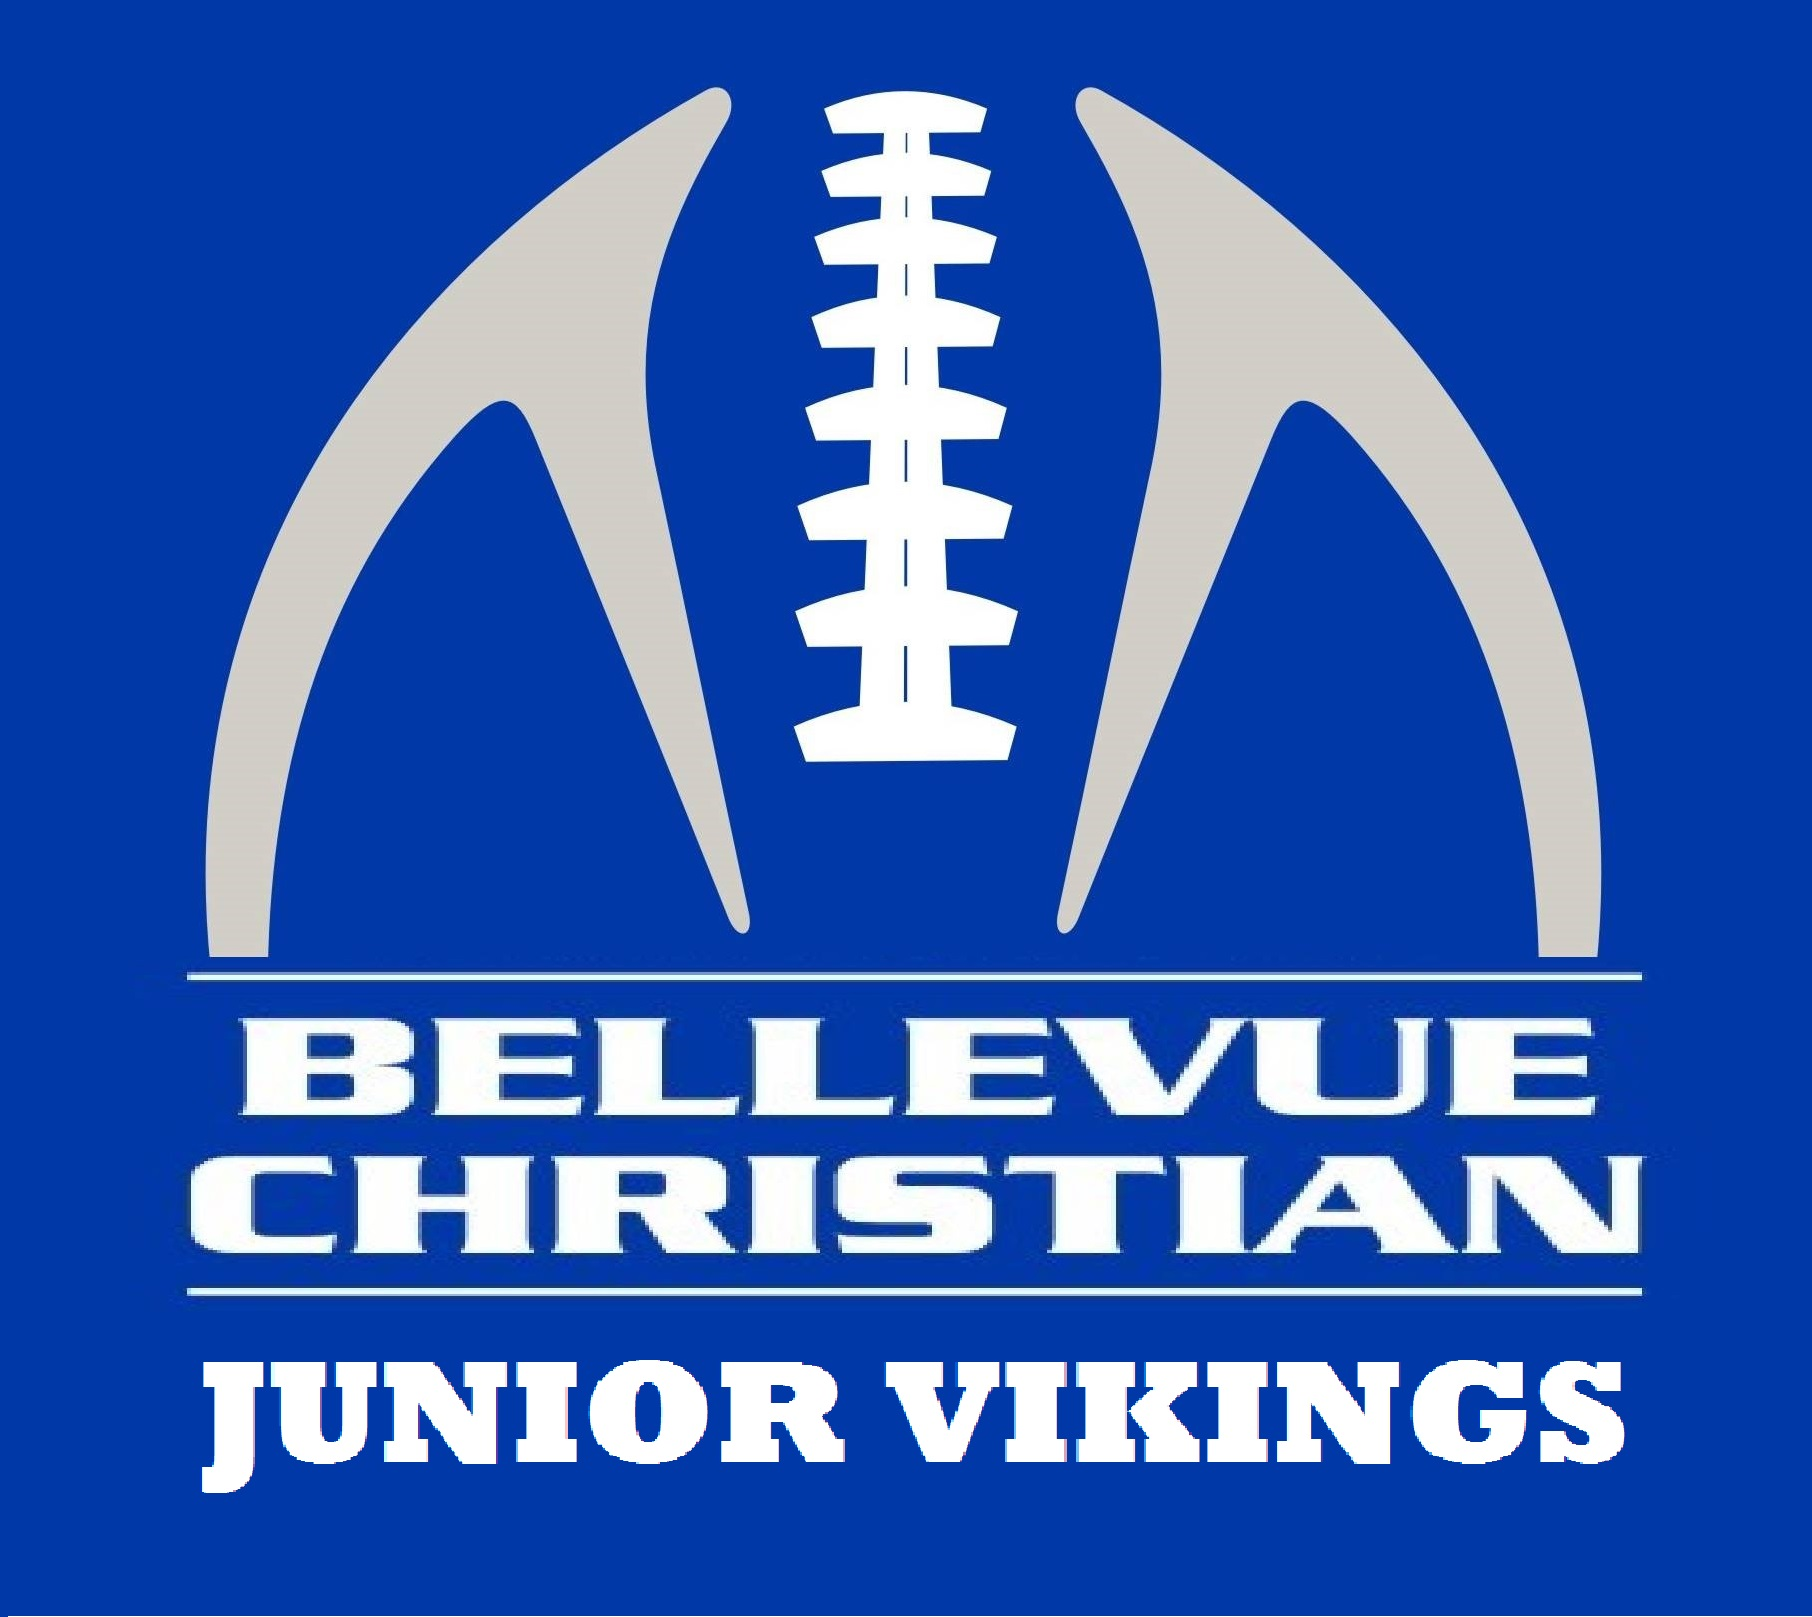 Bellevue Christian Jr. Vikings